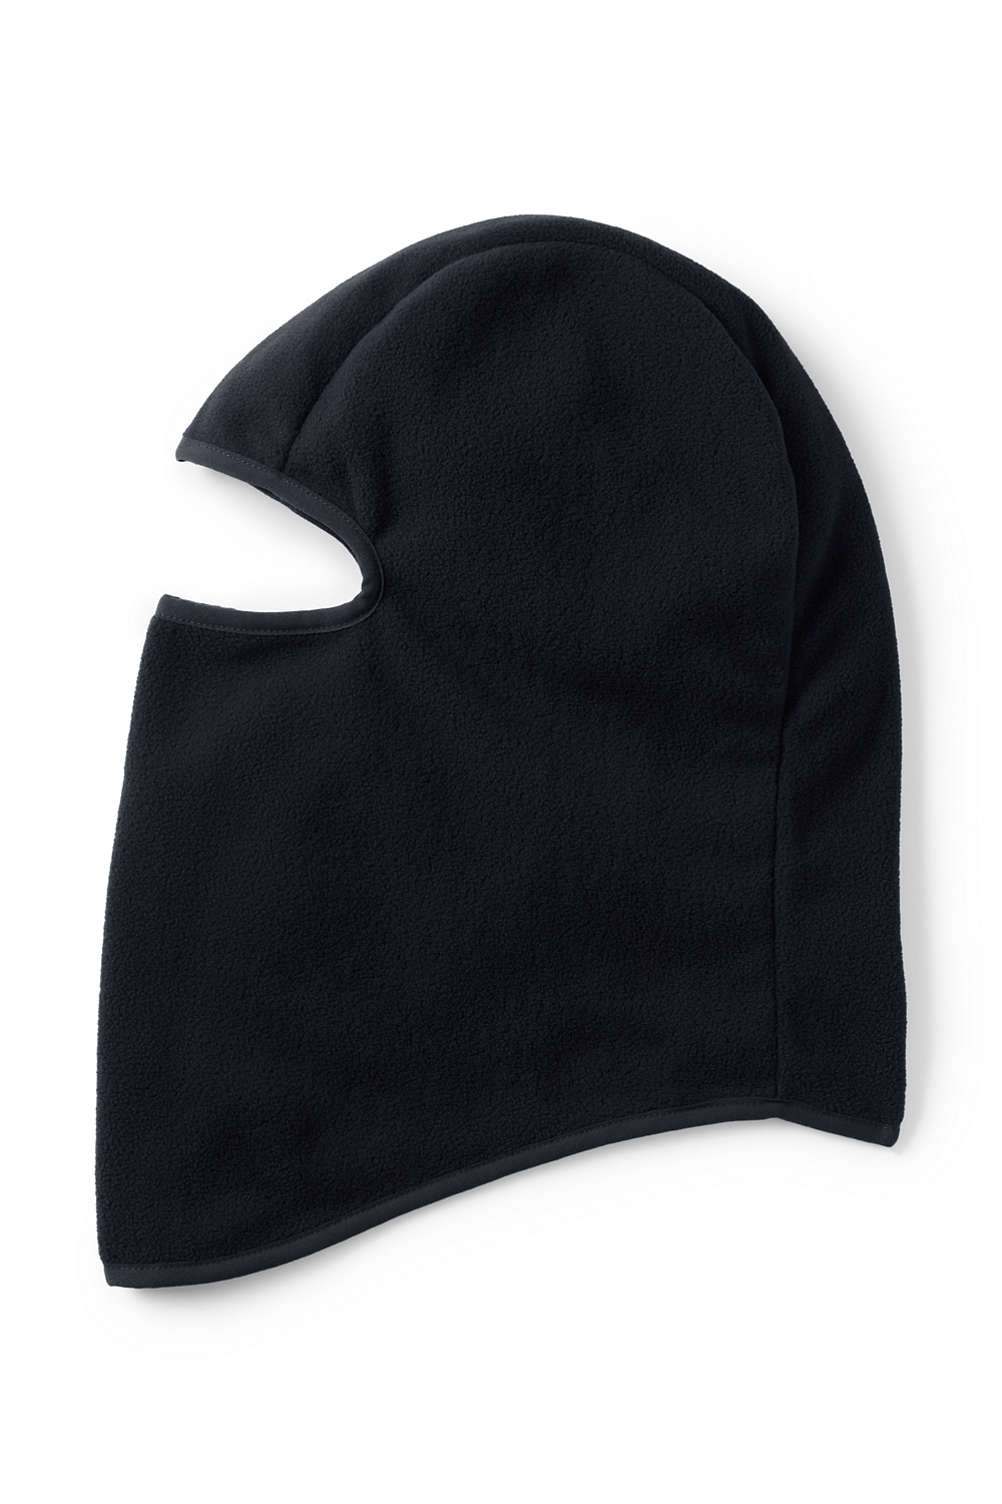 8d9526b4d9f7 Boys ThermaCheck 100 Balaclava Fleece Ski Mask from Lands  End